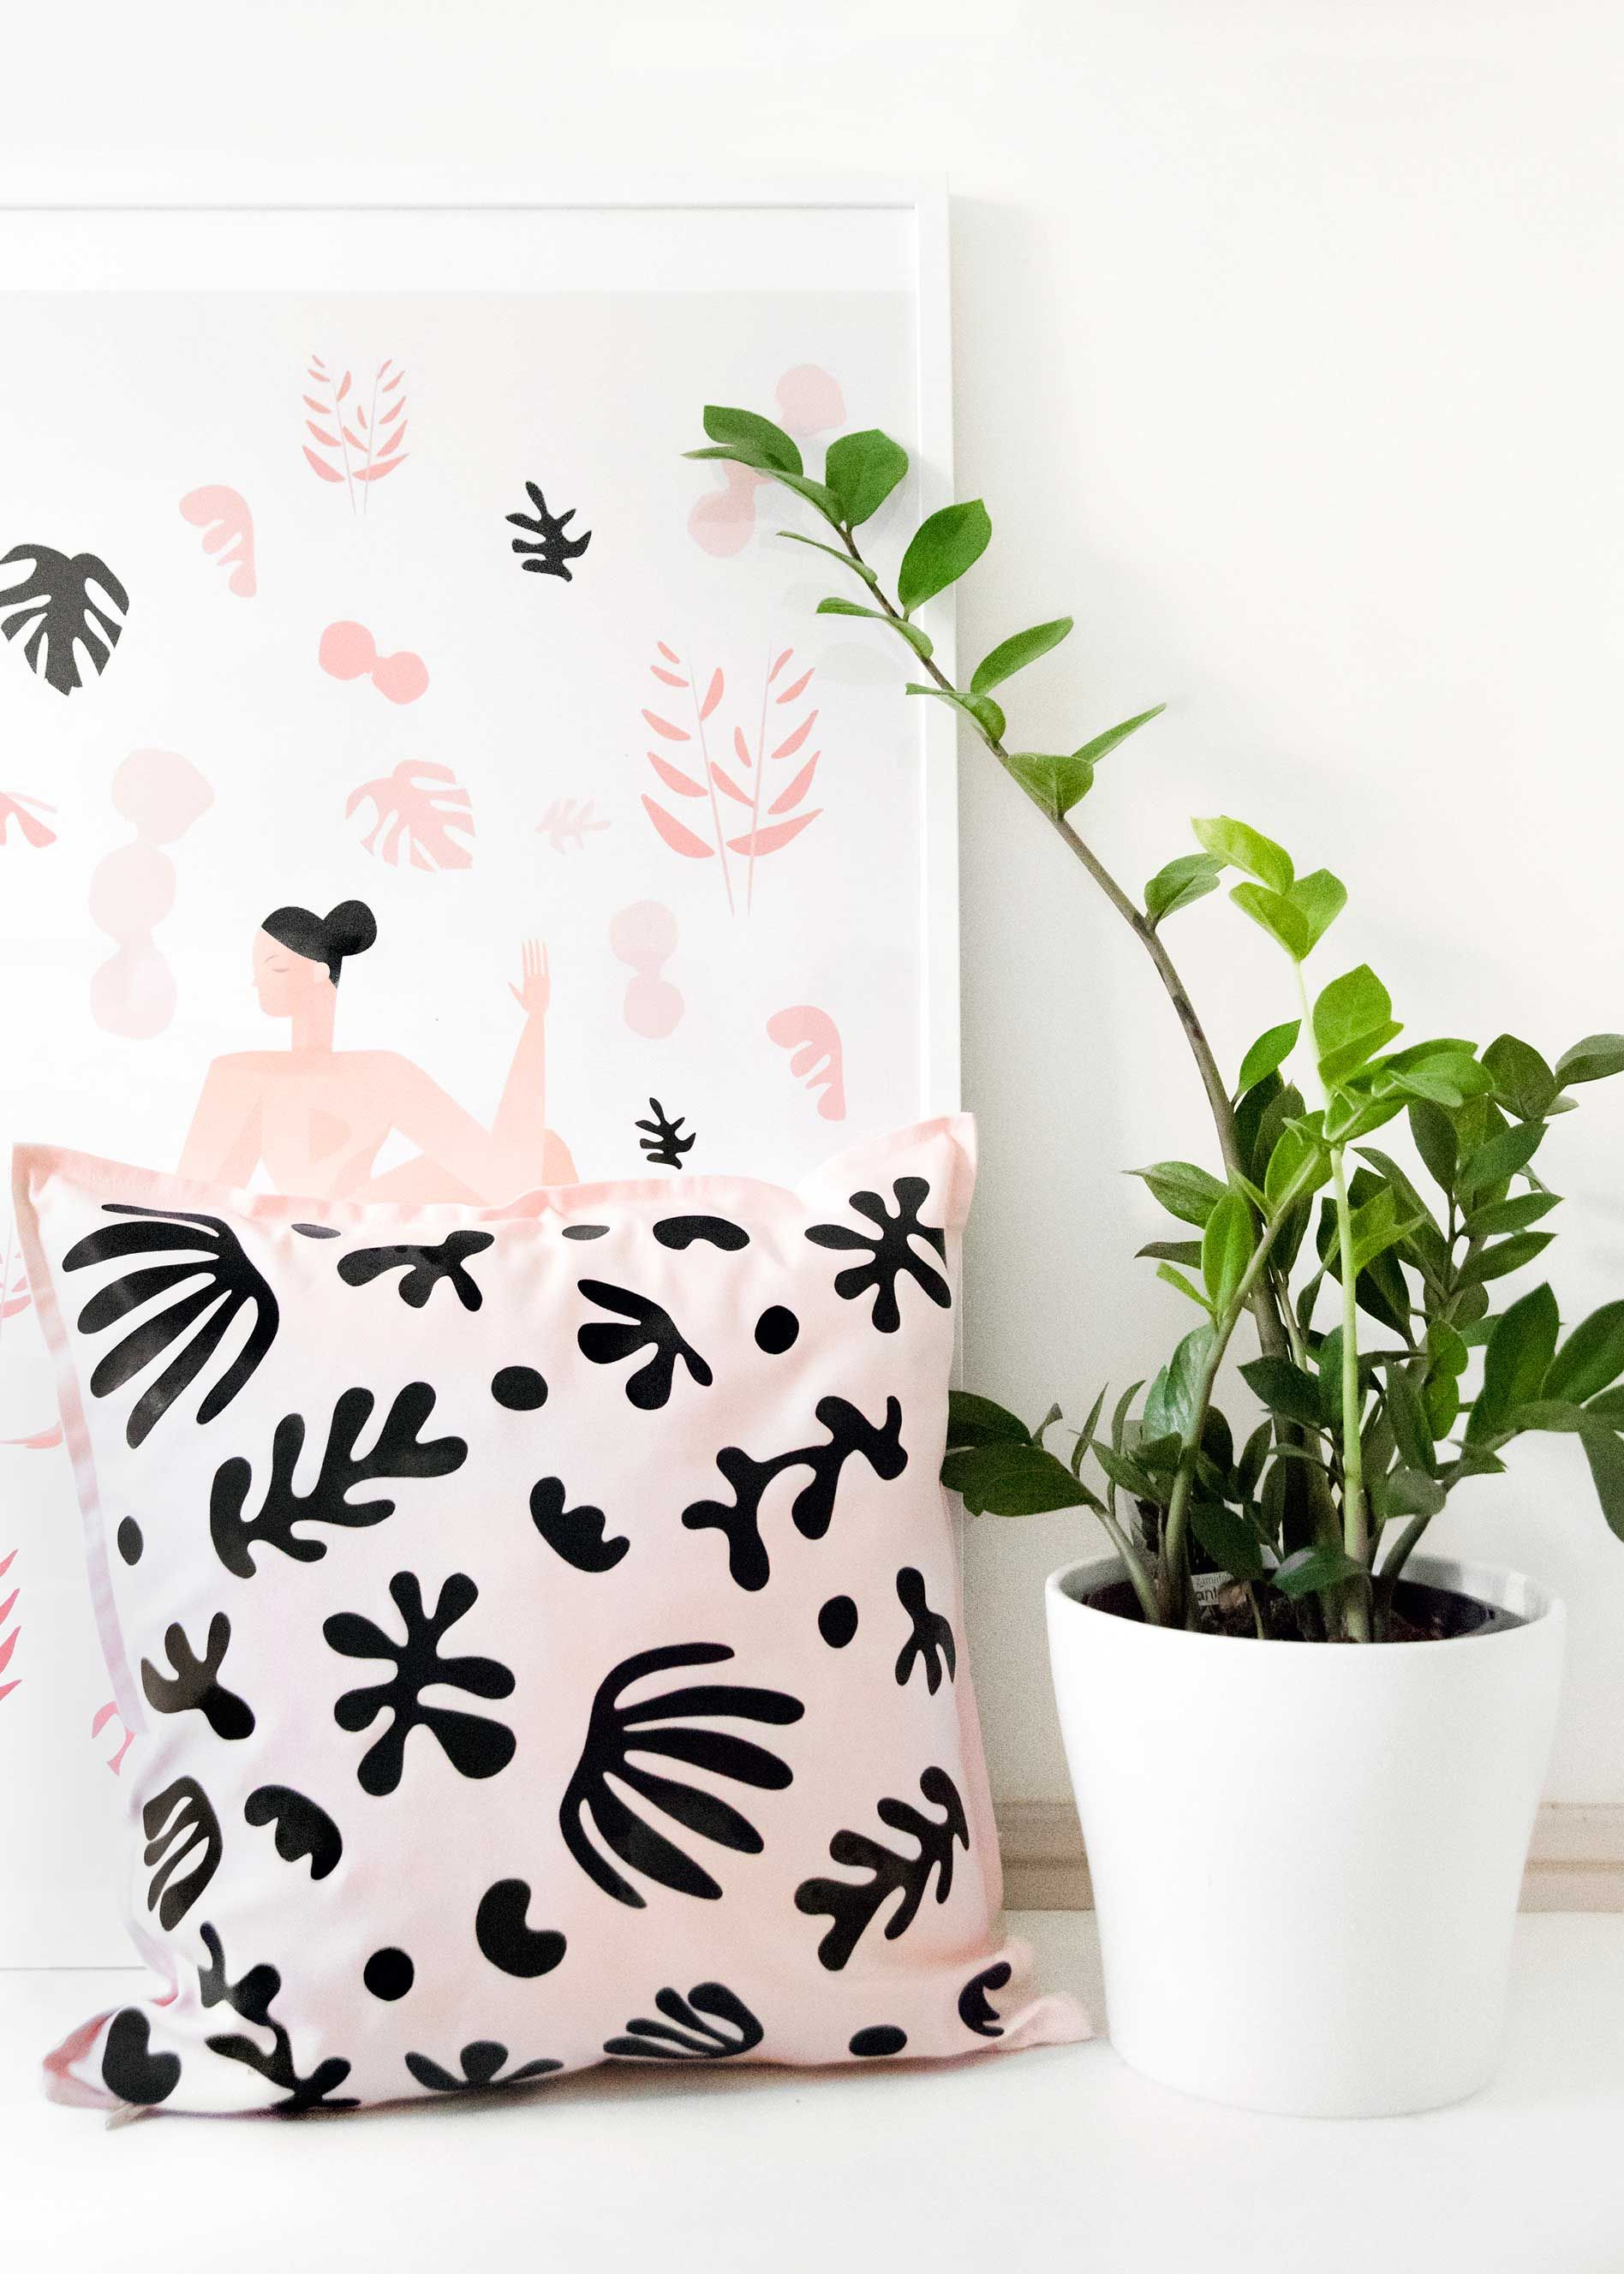 Diy matisseinspired cushion cover on curbly